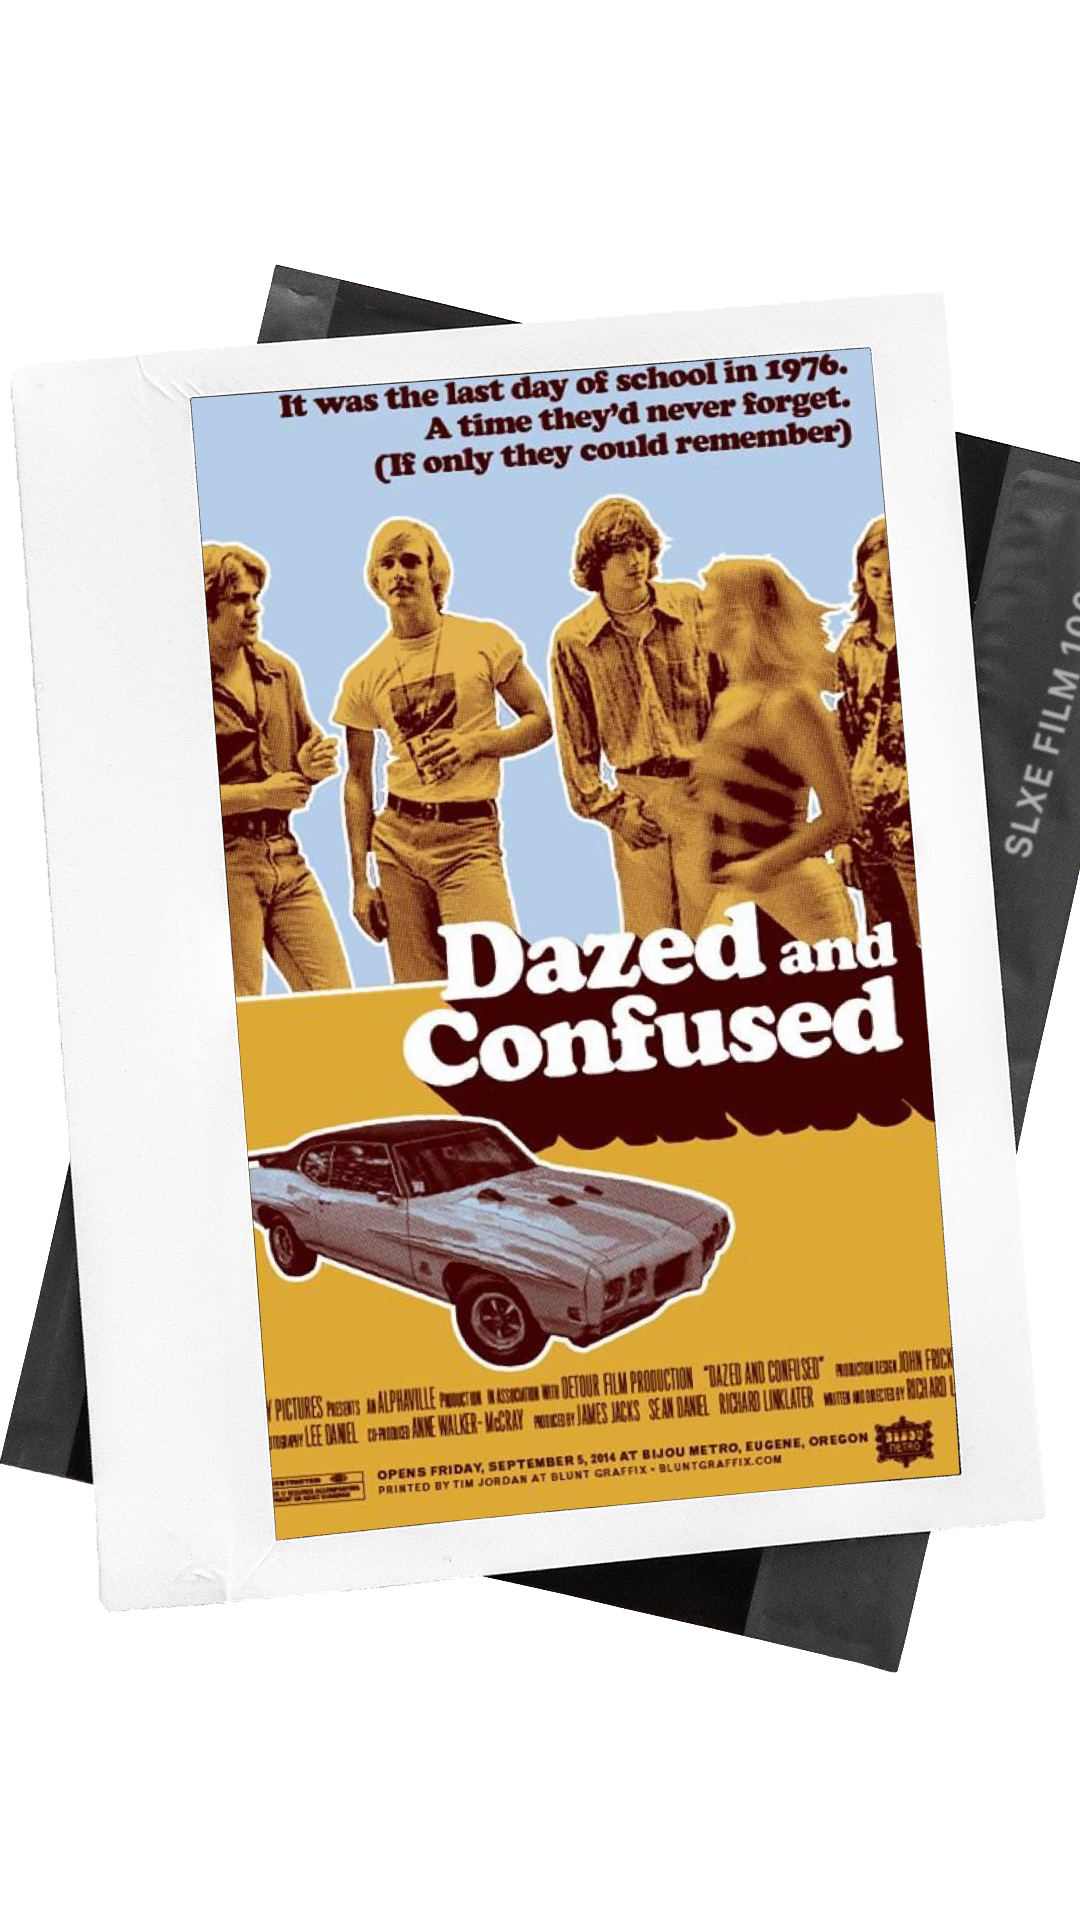 Dazed and Confused (a classic) - This coming of age movie exactly portrays the high school experience we all dreamt of: bell bottoms, guys with long hair and pool parties. While the movie is cool and all, most of us can find something in common with at least one of the characters, all slightly confused and anxious about their futures. For those who are past their high school and college experience, Dazed and Confused serves as a good reminder of who we were as teens. On top of that the soundtrack is 10/10!